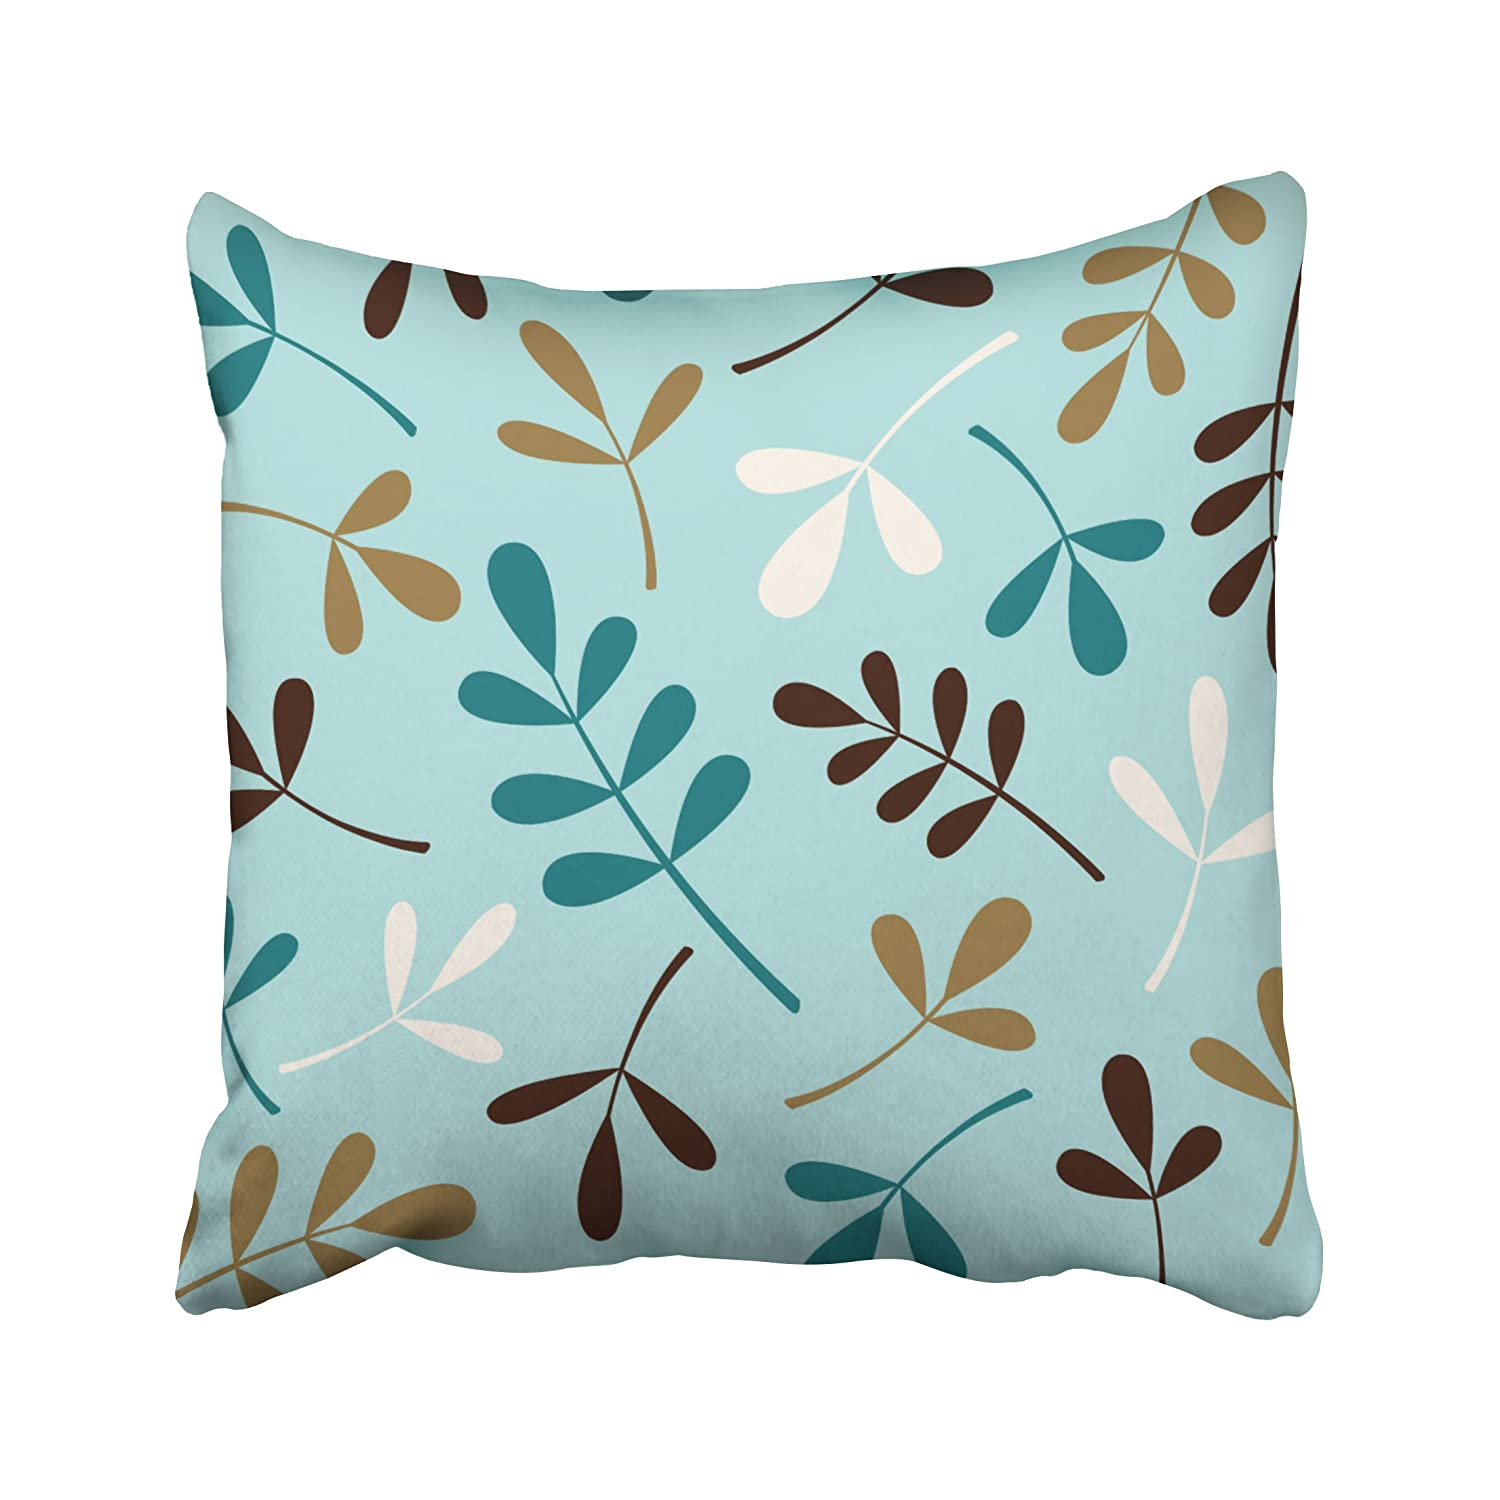 Amazon.com: Pakaku Throw Pillows Covers For Couch/Bed 18 x 18 inch ...